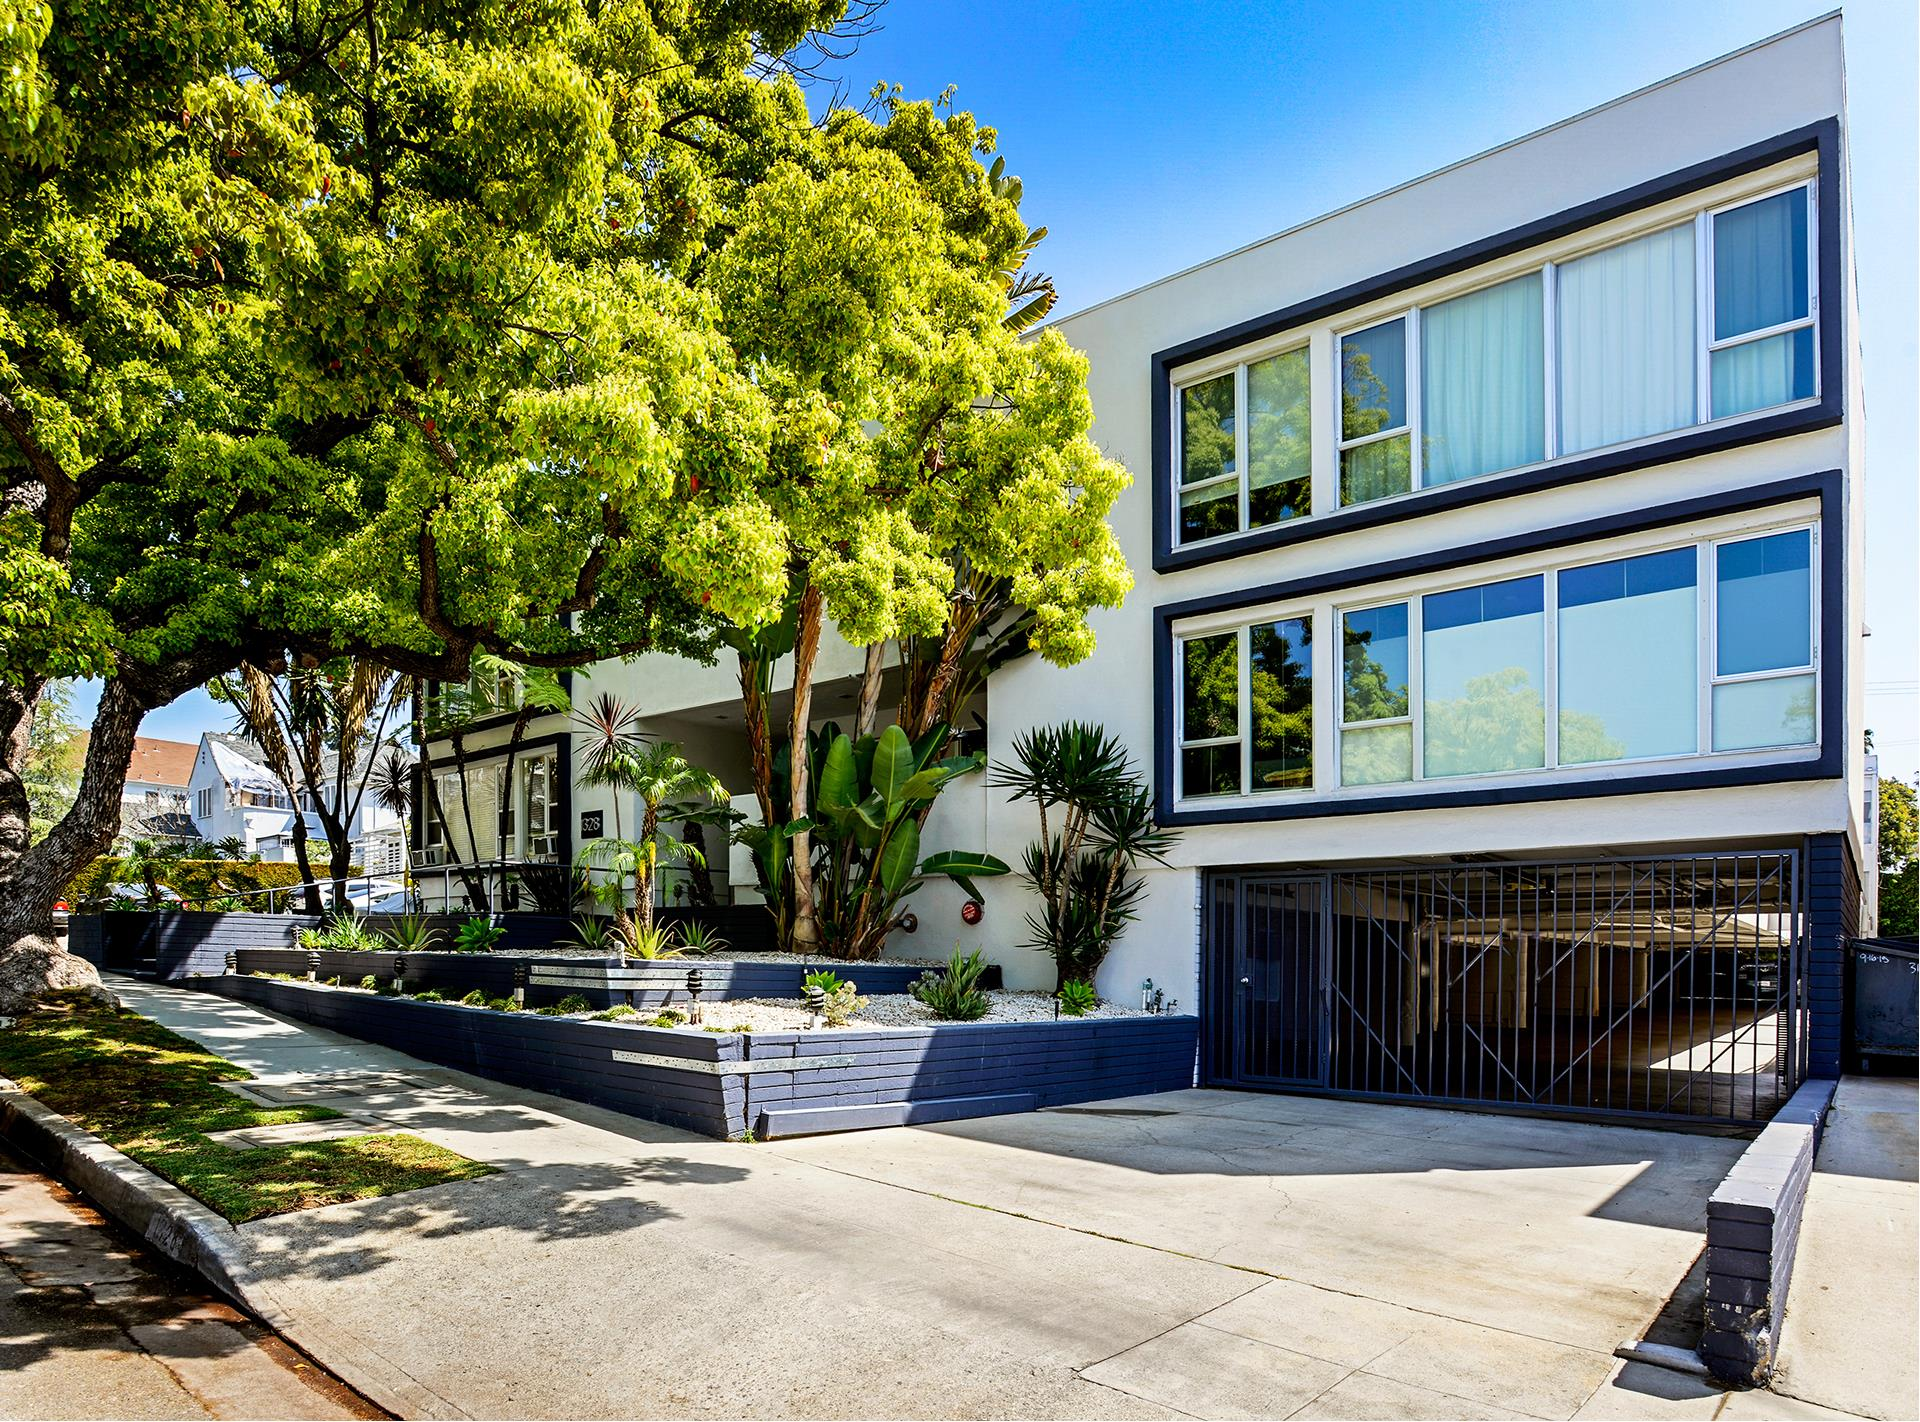 1328 HAVENHURST Drive, 208 - West Hollywood, California